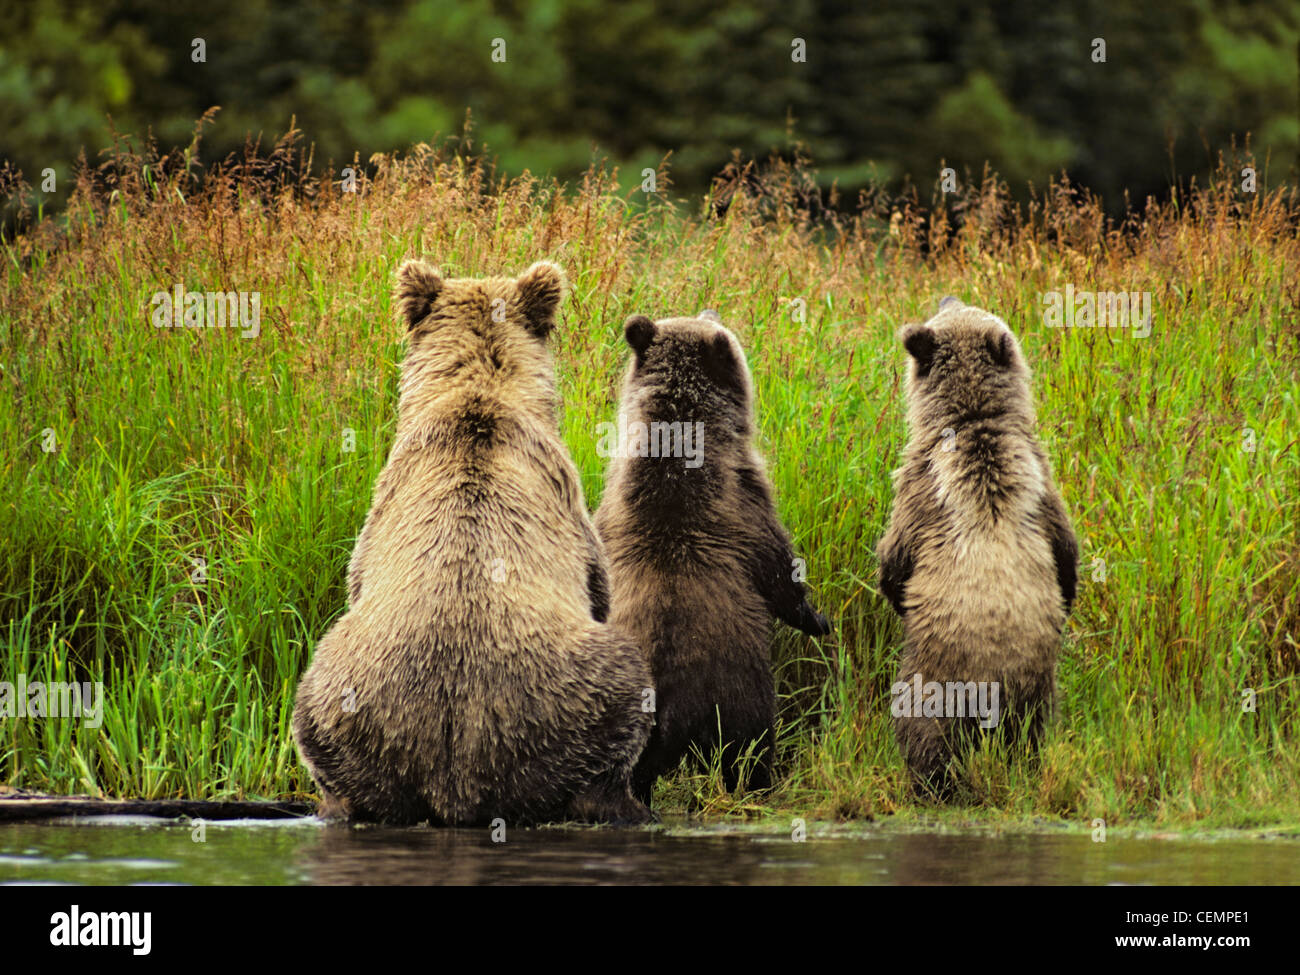 Grizzly Bear Family from Behind - Stock Image